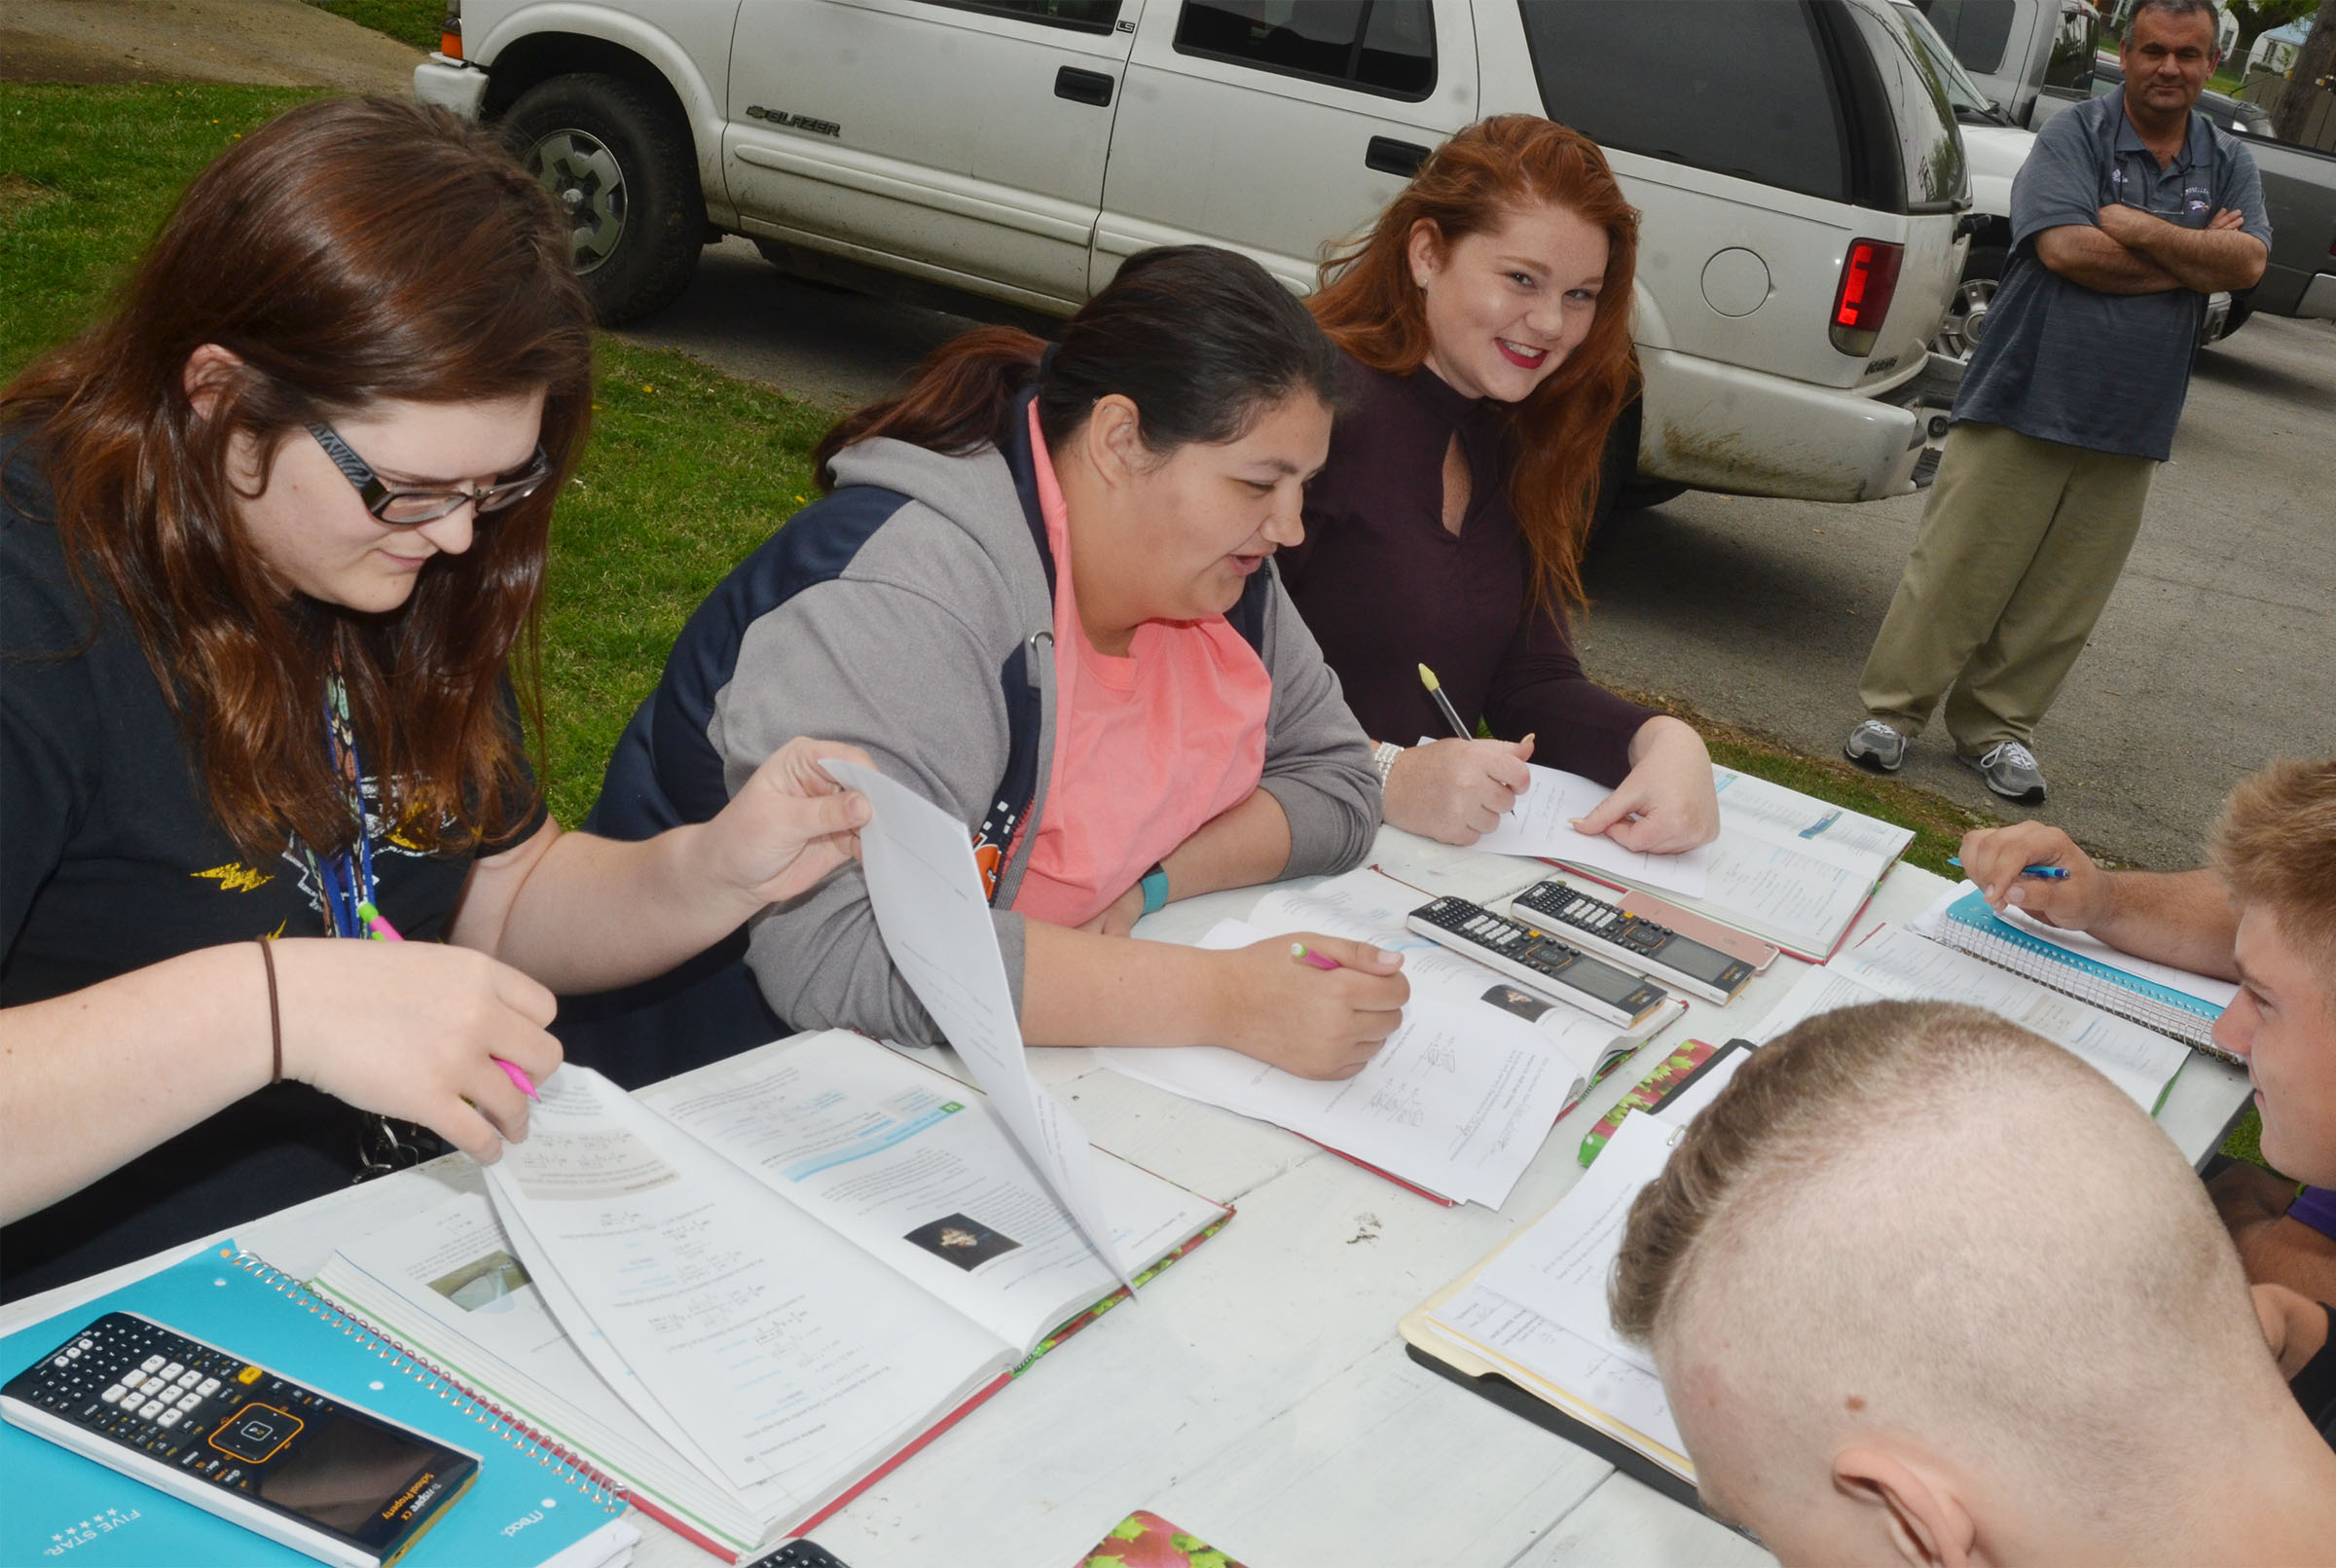 CHS seniors, from left, Vera Brown, Laura May Gutierrez and Mallory Haley work on their homework while having class outside, as math teacher Kevin Rafferty observes.